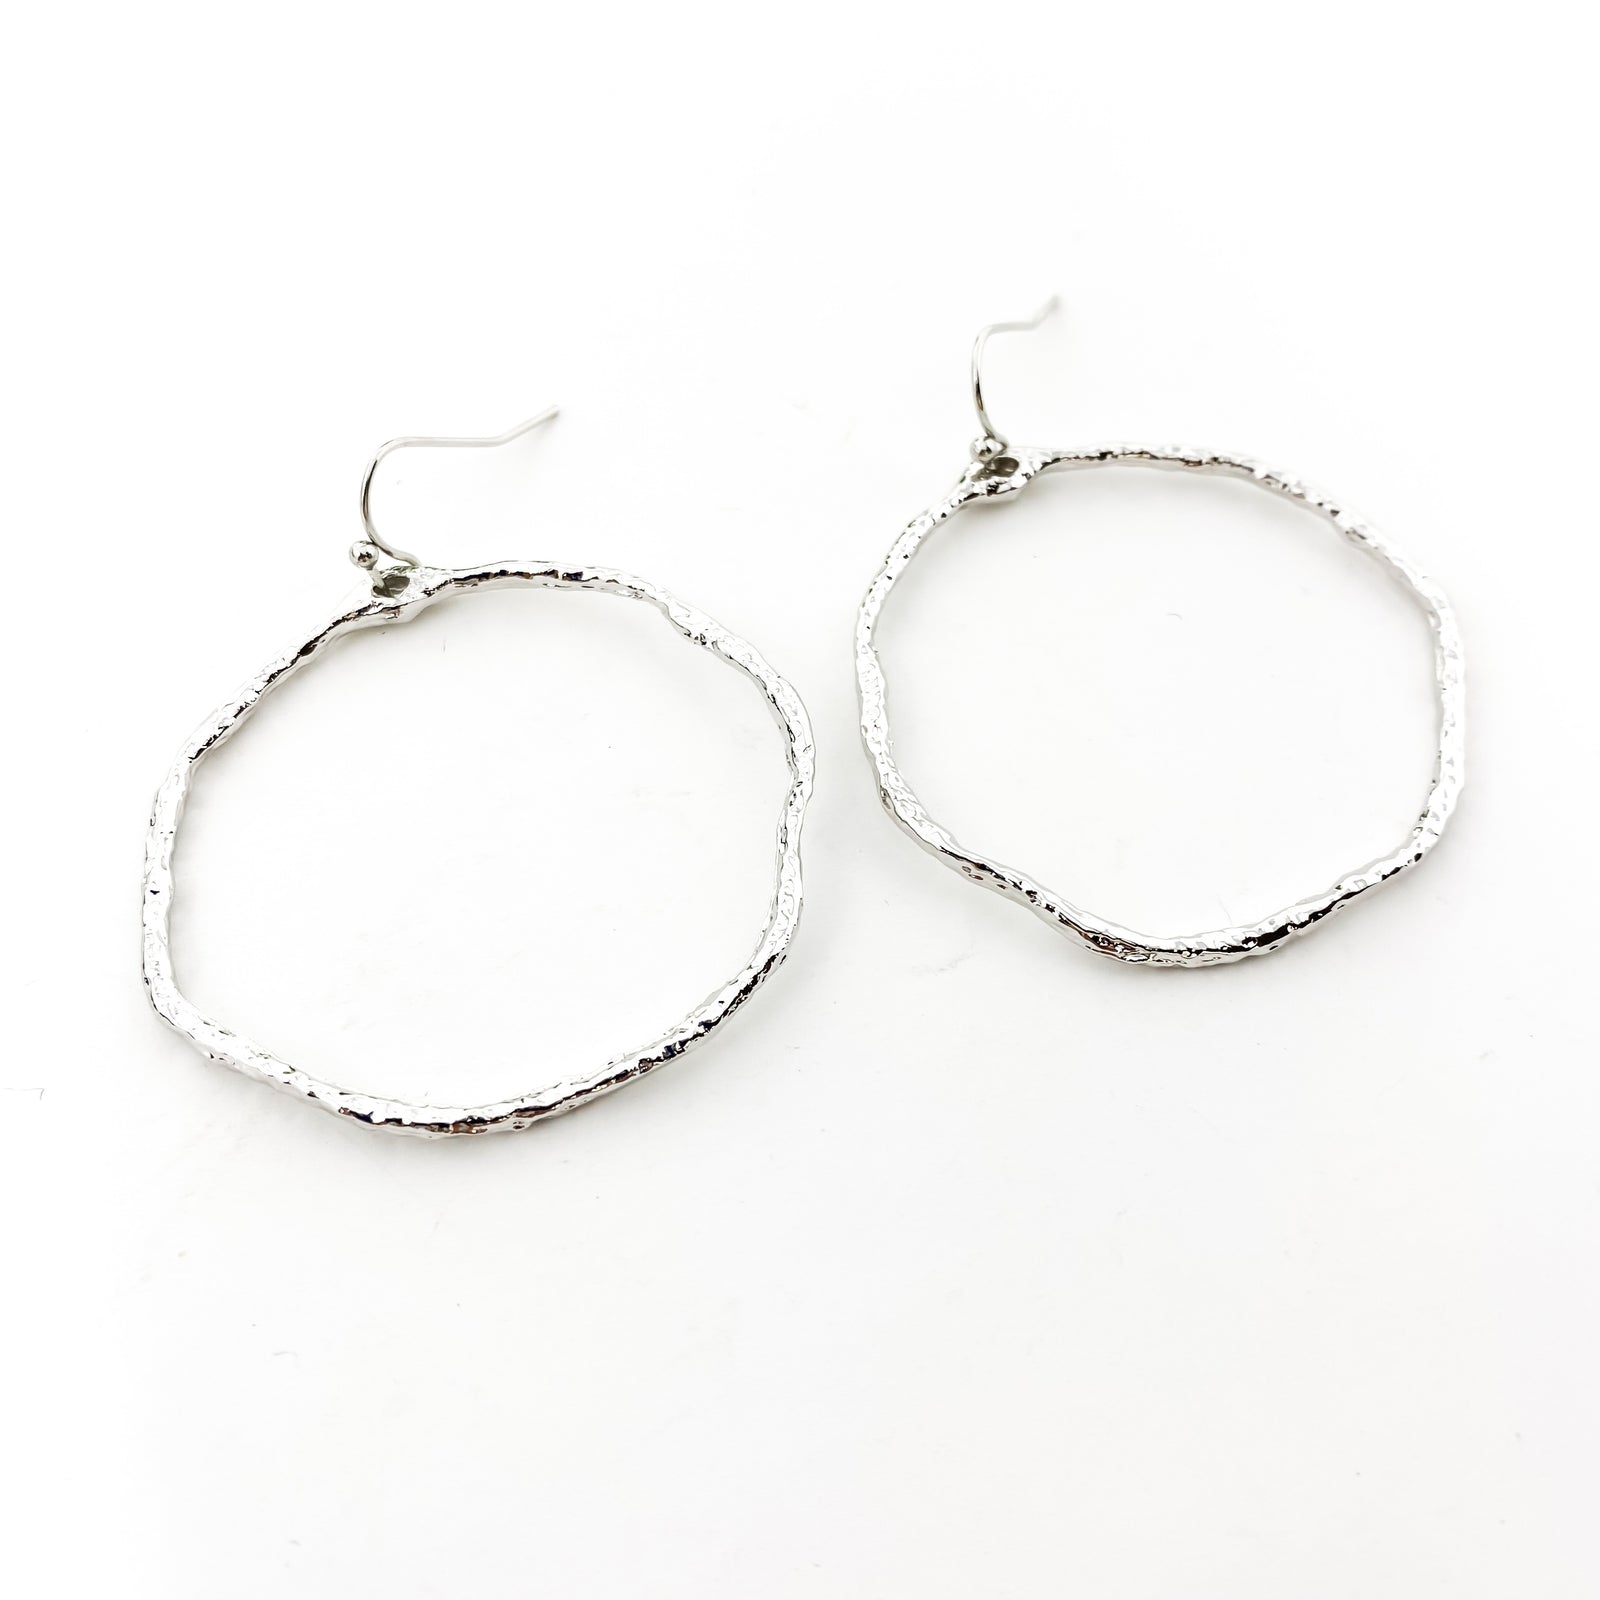 LARGE TWISTED HAMMERED HOOP EARRINGS | RHODIUM PLATED